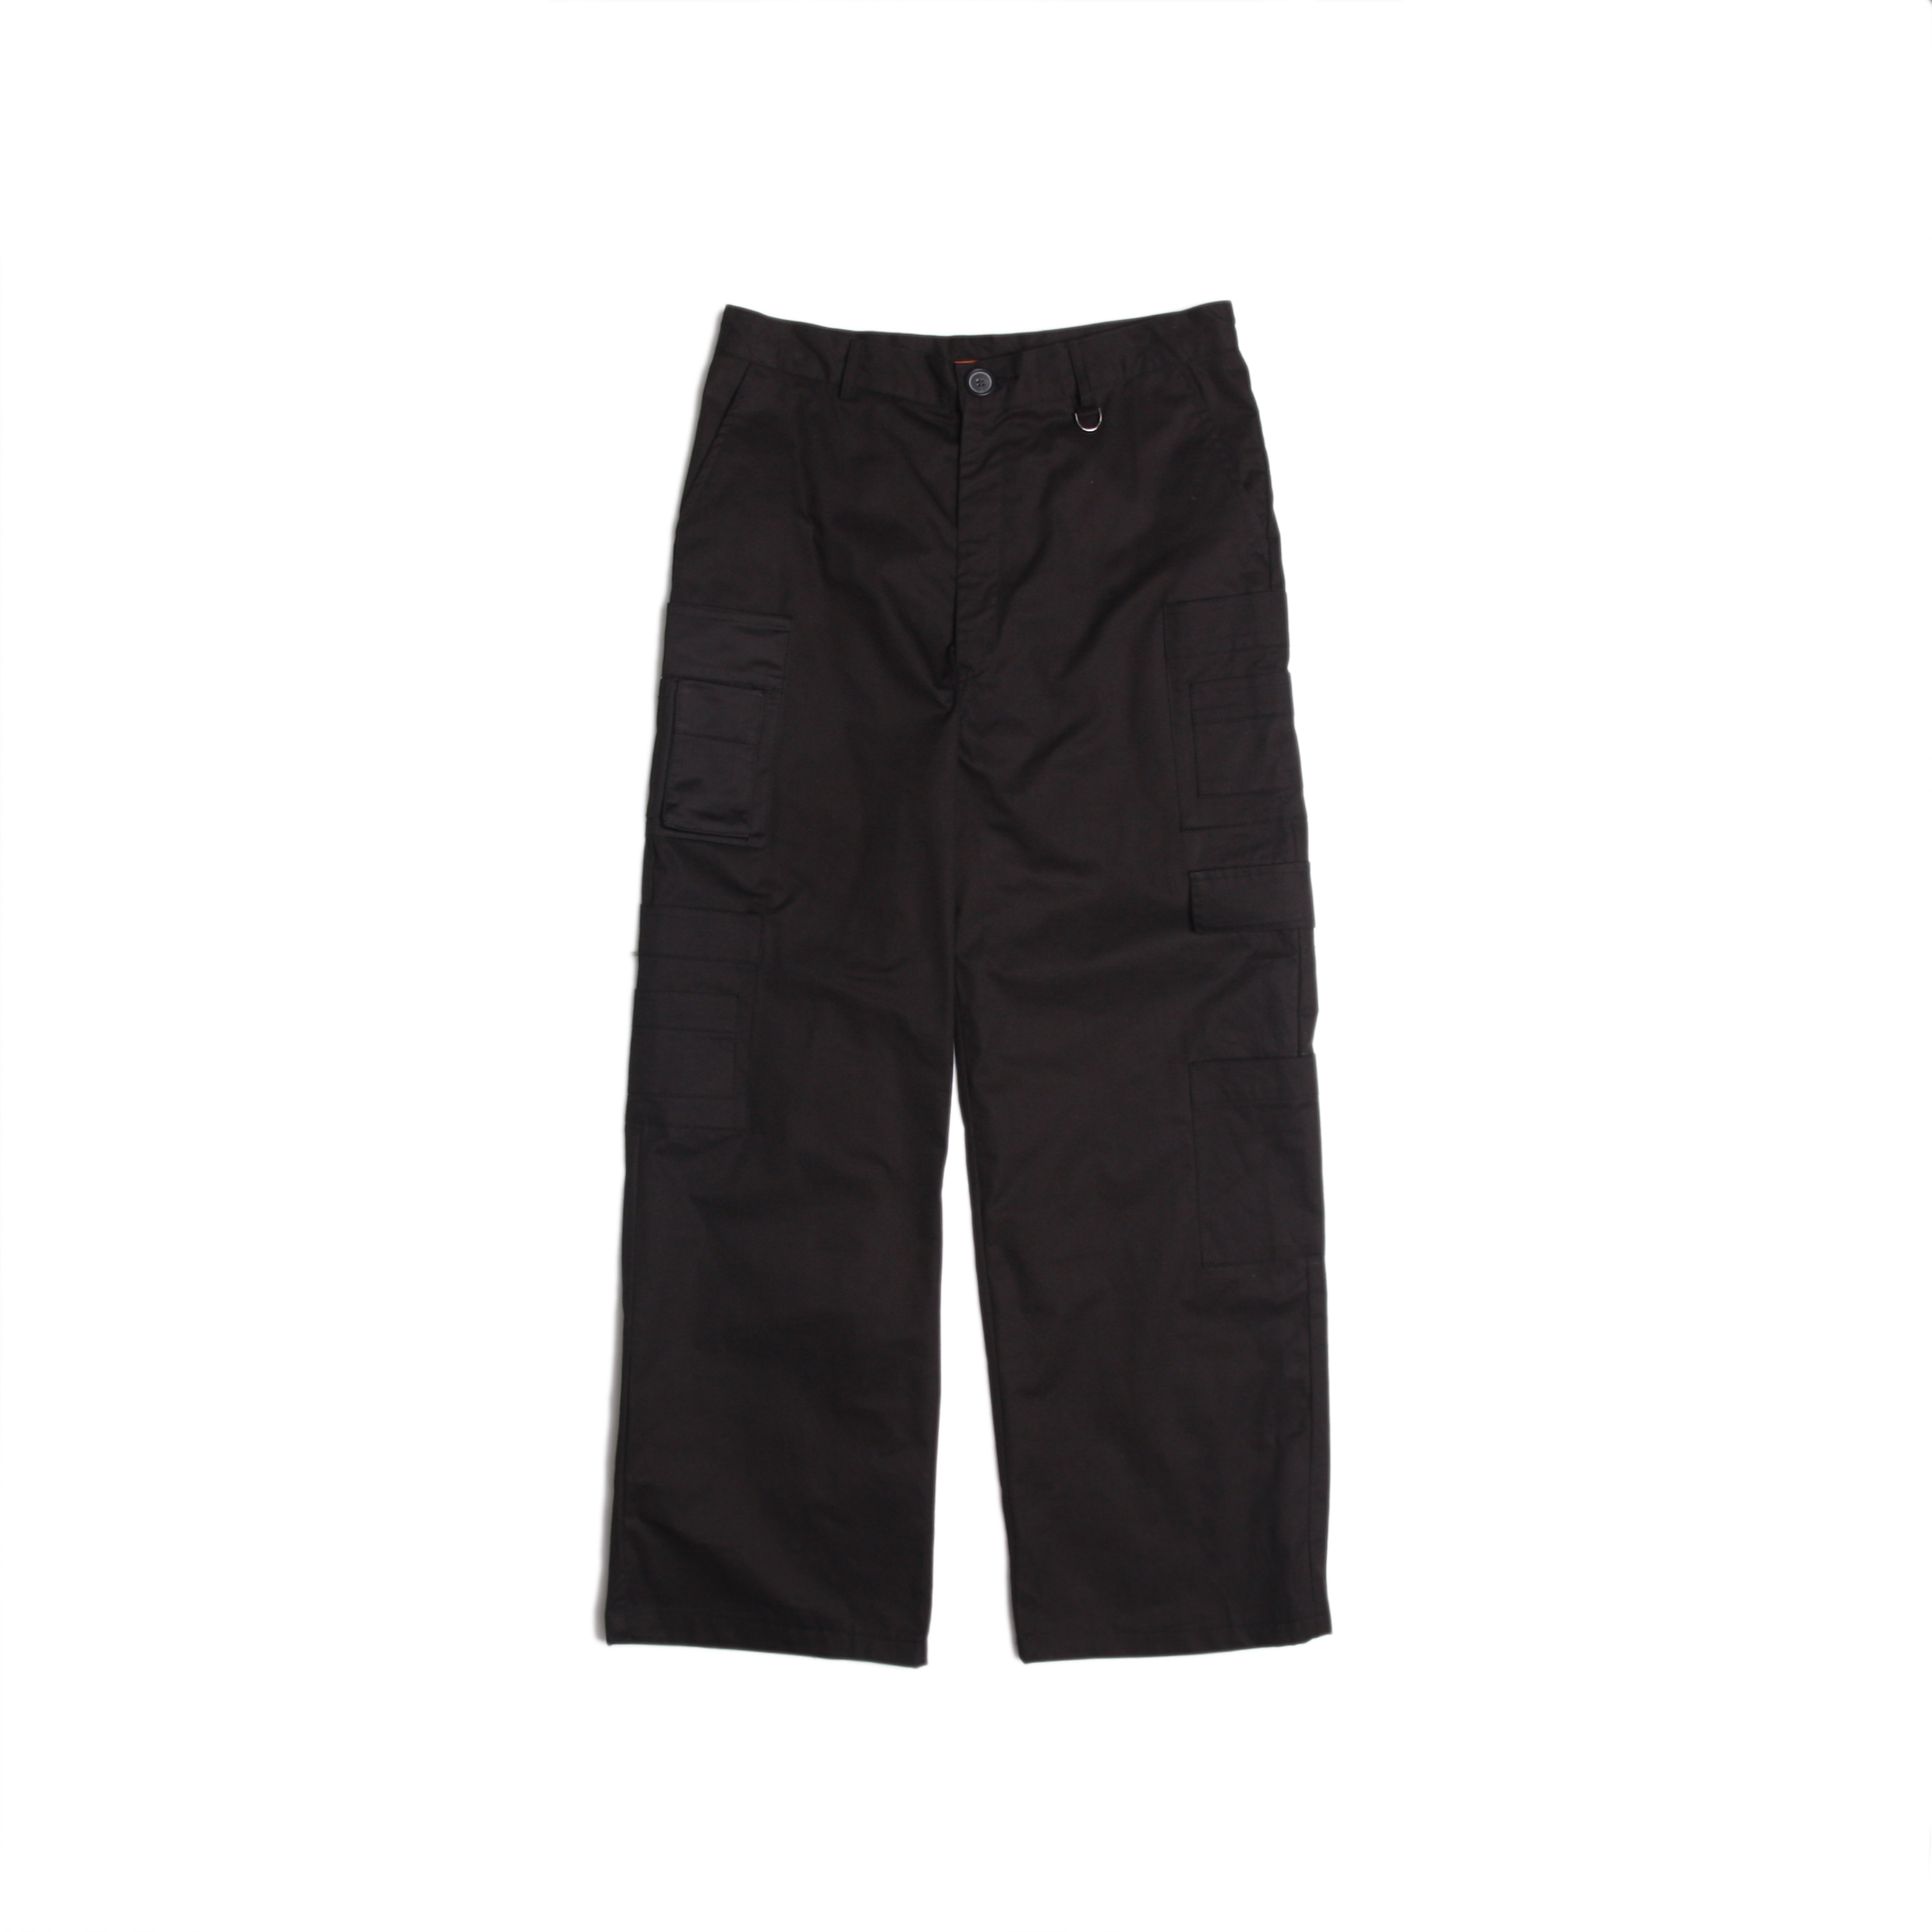 [DUCKDIVE]UTILITY POCKET CARGO PANTS _ BLACK